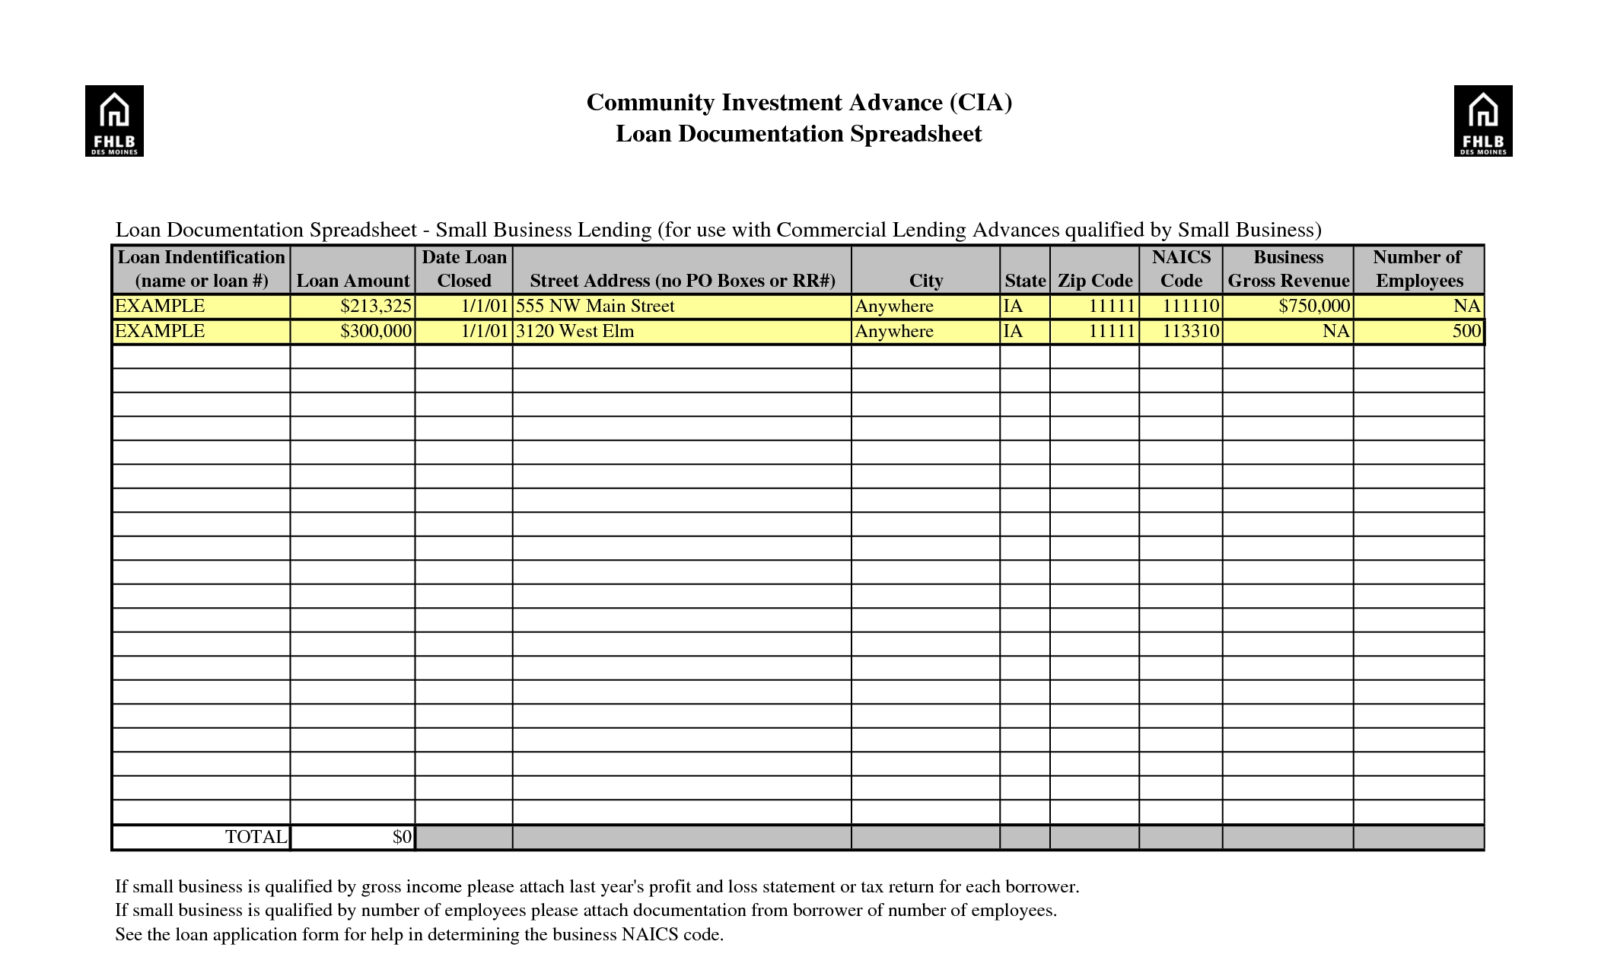 Tax Spreadsheet Inside Free Business Forms Small Excel Spreadsheets For Nbd With Tax Form